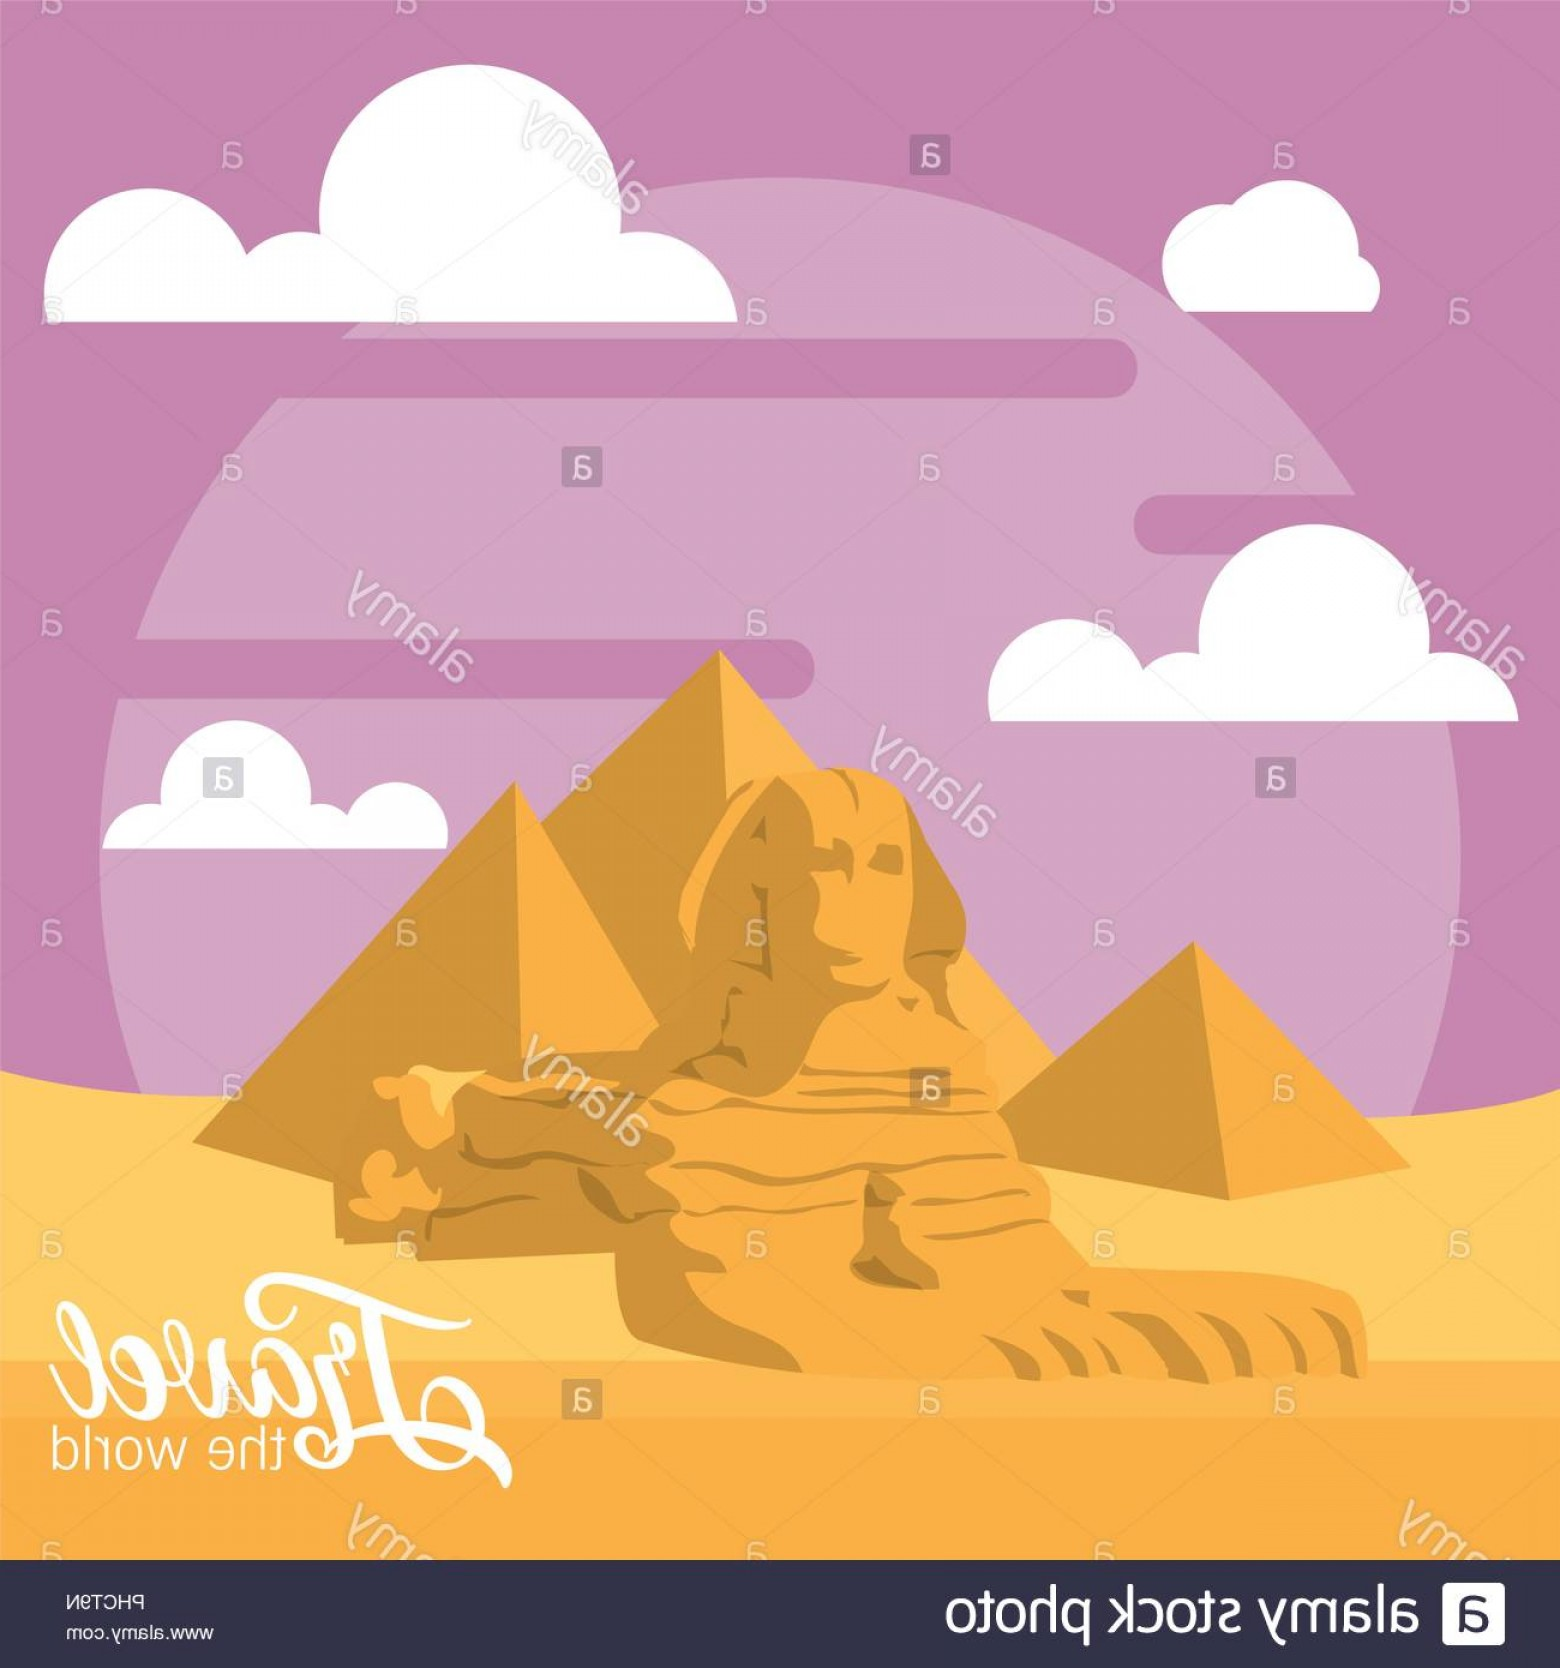 Piramids Vector Art: Travel The World Card With Egypcian Pyramids Vector Illustration Graphic Design Image